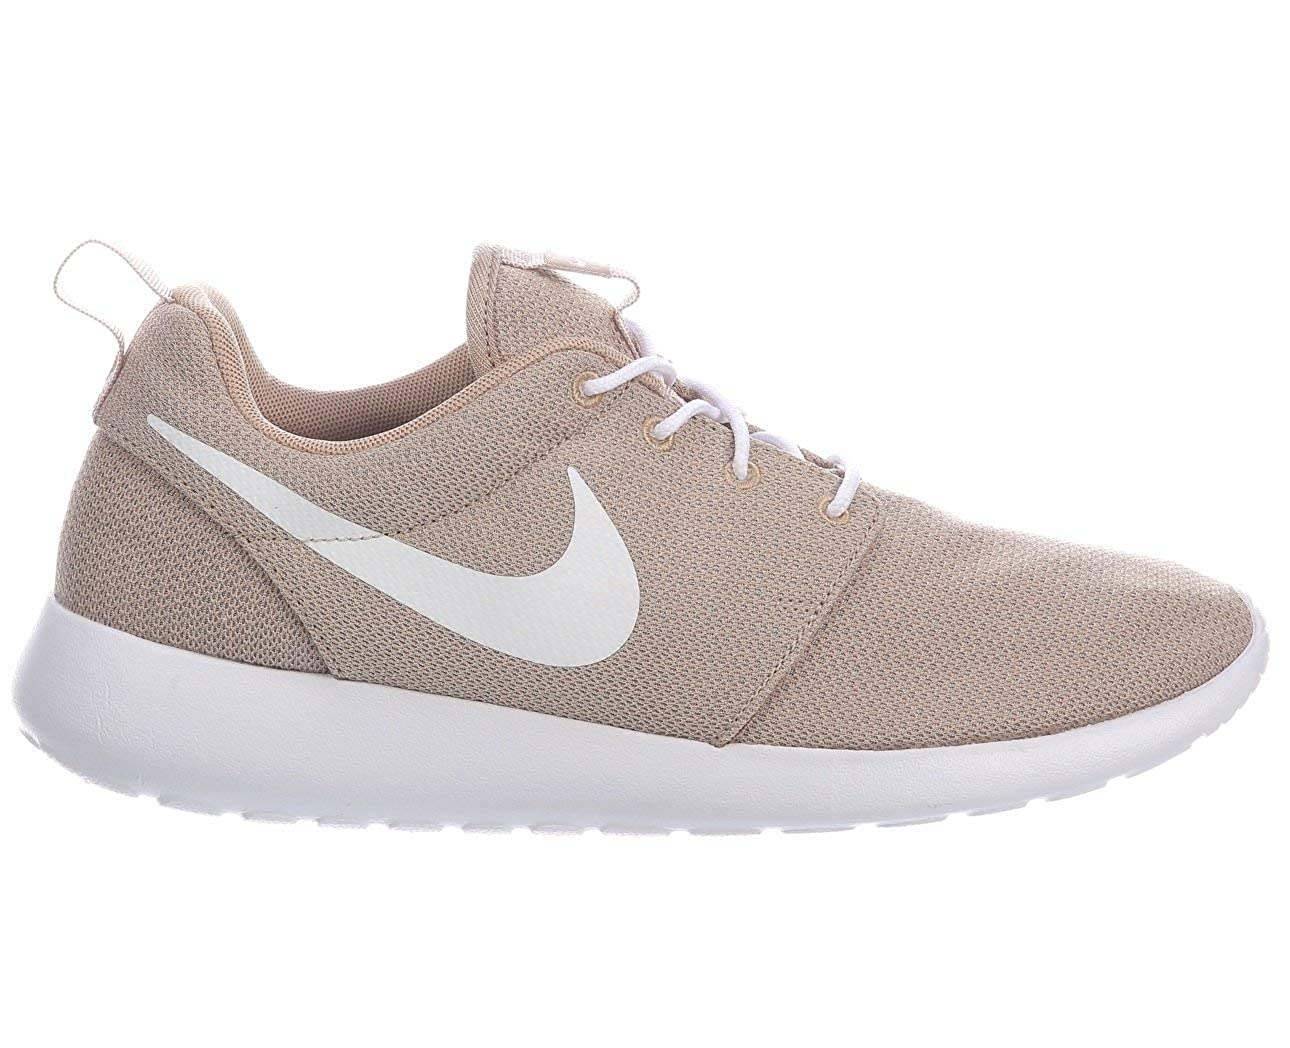 official photos 33426 fd39e Nike Roshe One Mens 511881-204 Sand/White: Amazon.ca: Shoes ...